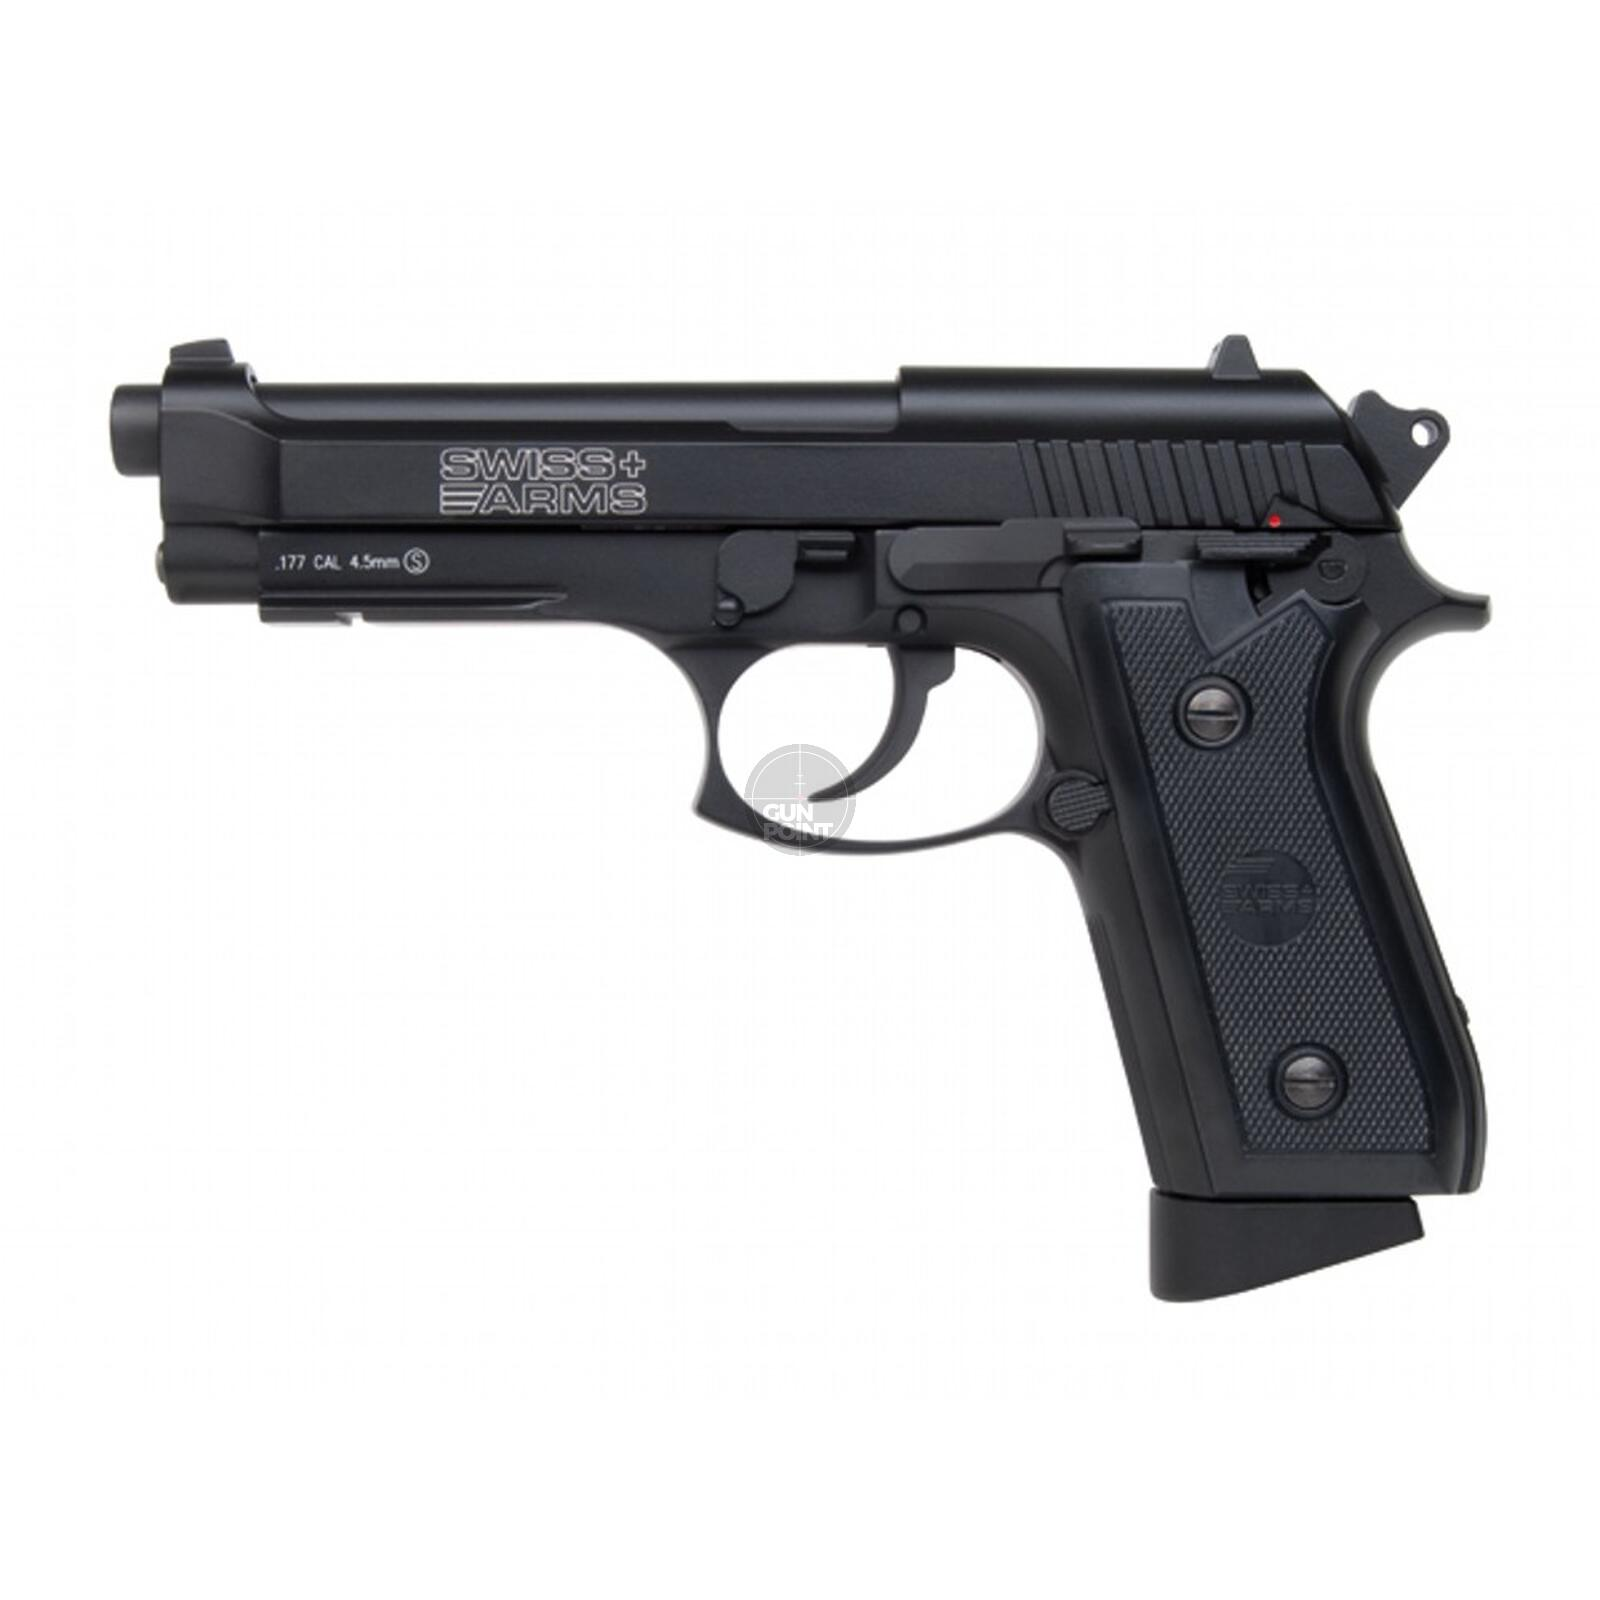 Luftpistole - Swiss Arms - P92 - Co2-System BlowBack - Kal. 4,5 mm